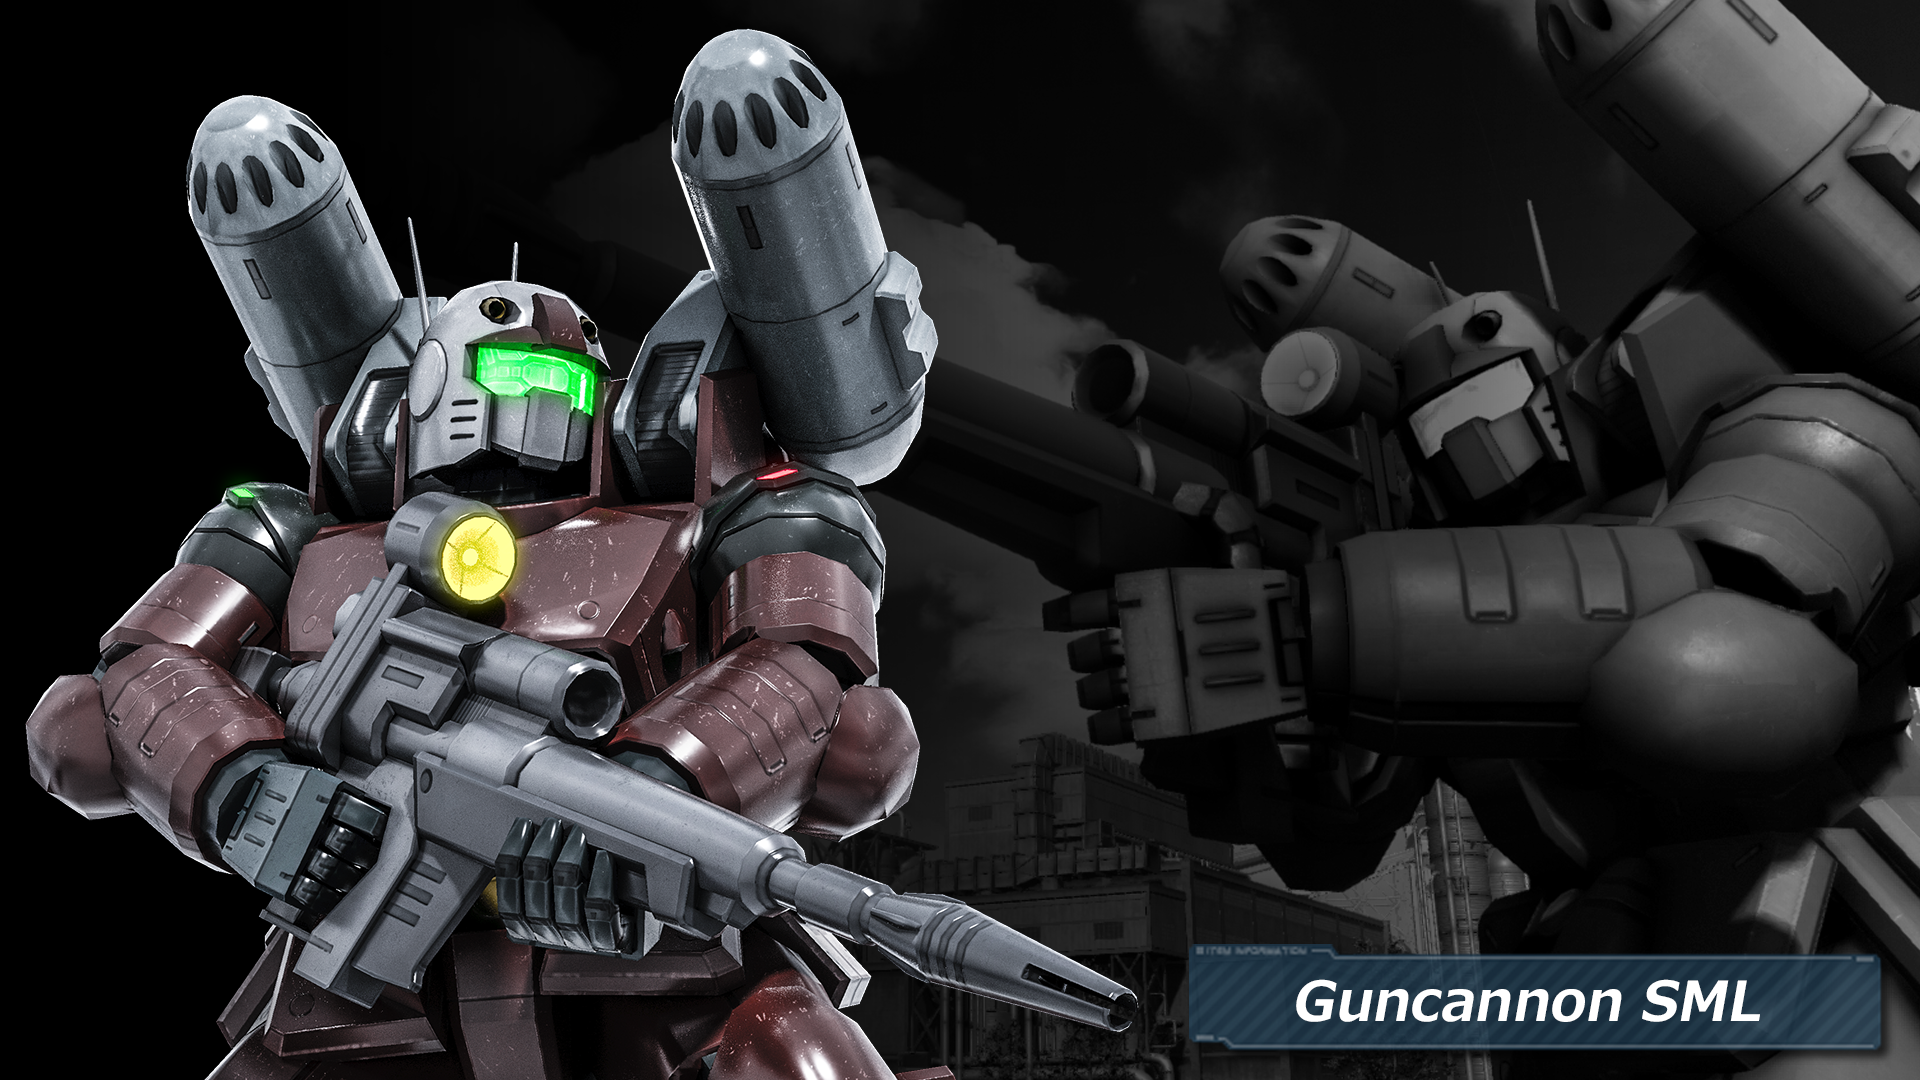 MOBILE SUIT GUNDAM BATTLE OPERATION 2 : Special Token Stash On Sale Now